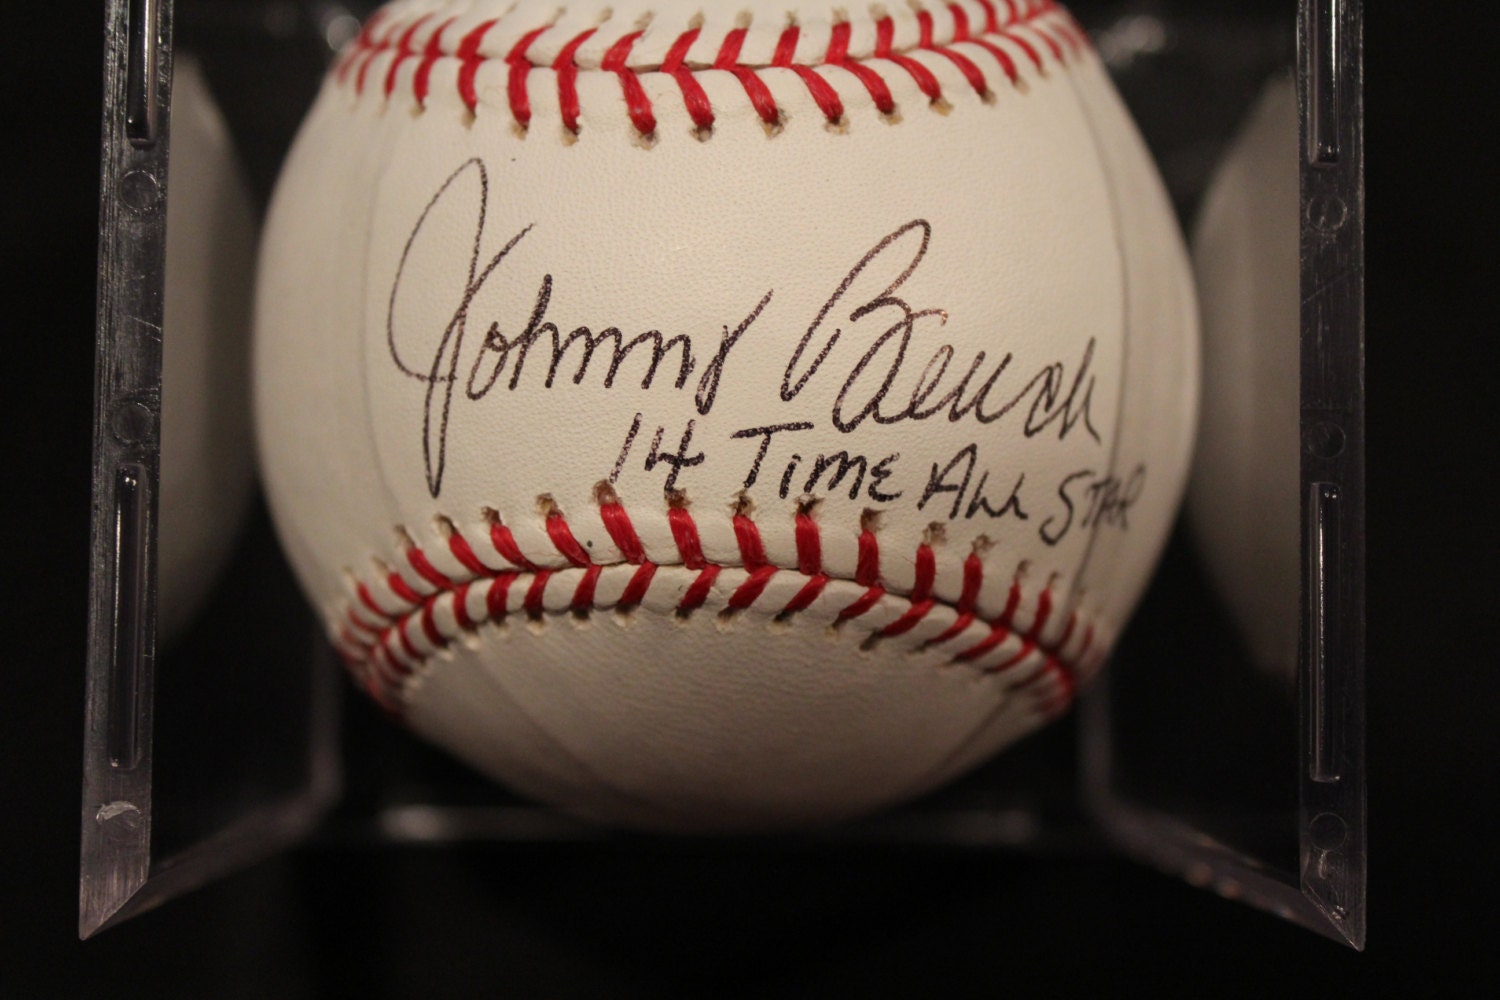 Johnny Bench Autographed Mlb Baseball With 14 Time All